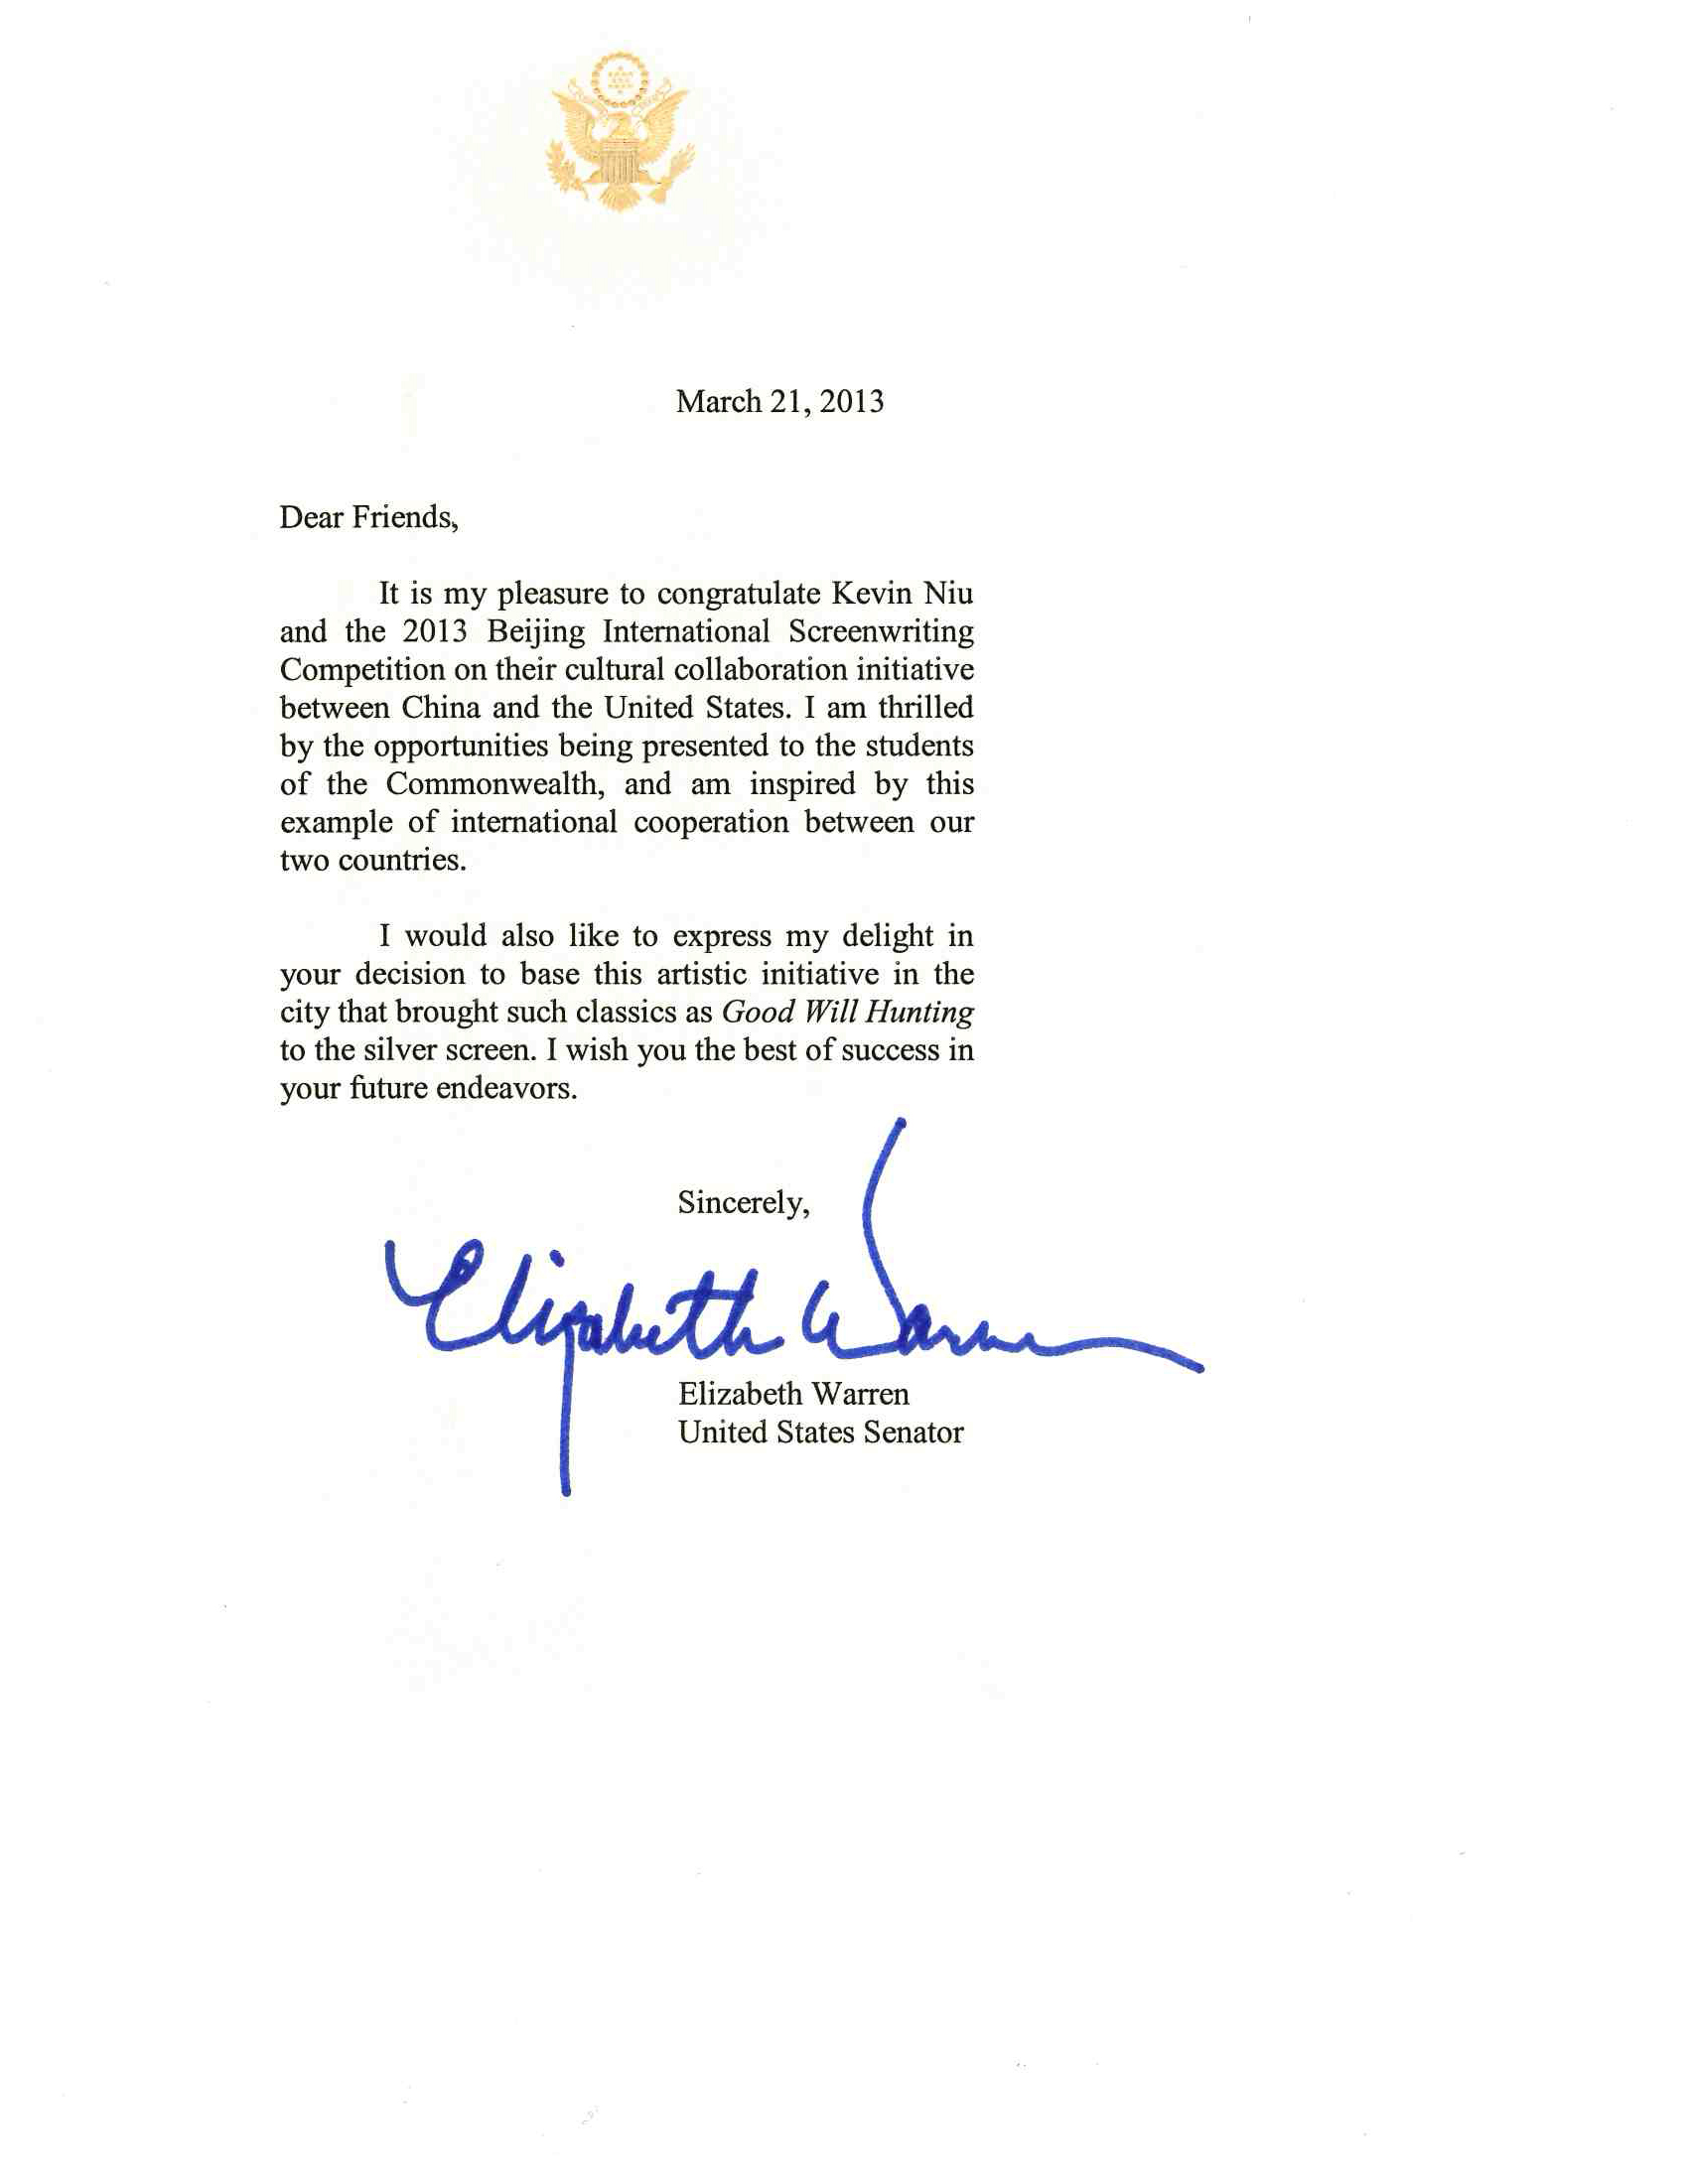 Congratulation letters from massachusetts senator warren governor governor patrick letter copy senator warren letter copy thecheapjerseys Image collections